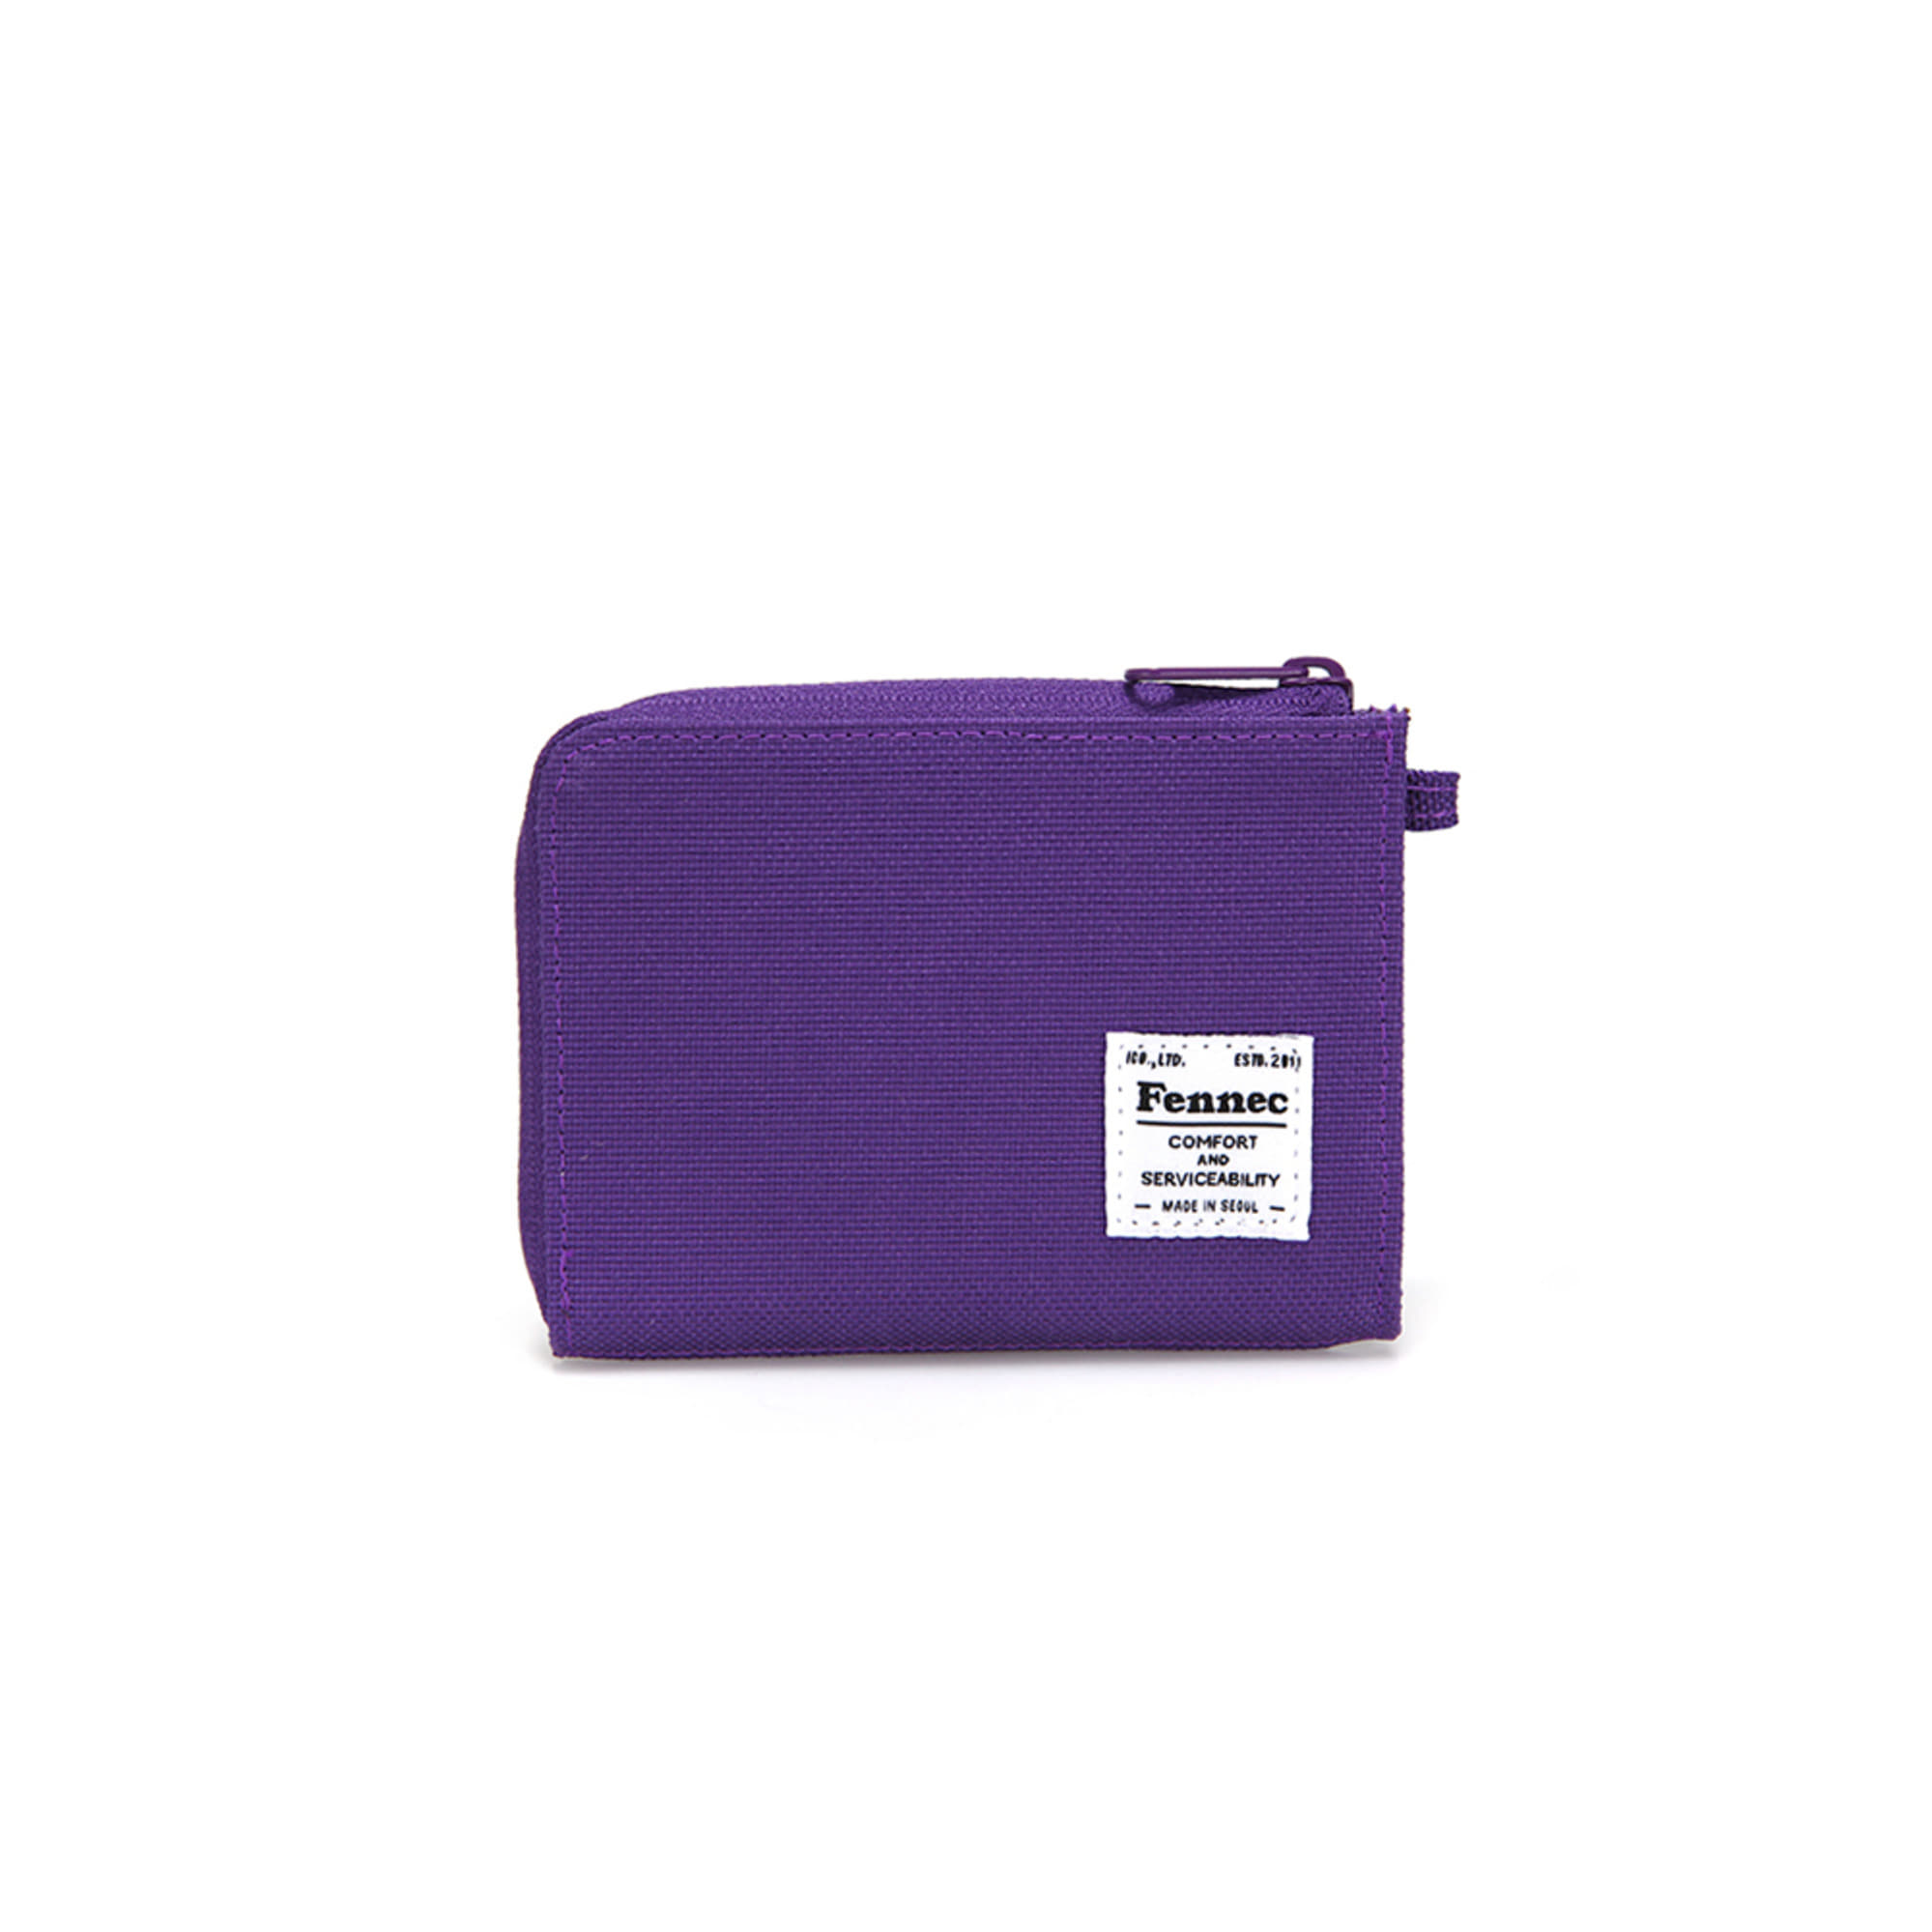 (SCRATCH SALE) C&S MINI WALLET - PURPLE